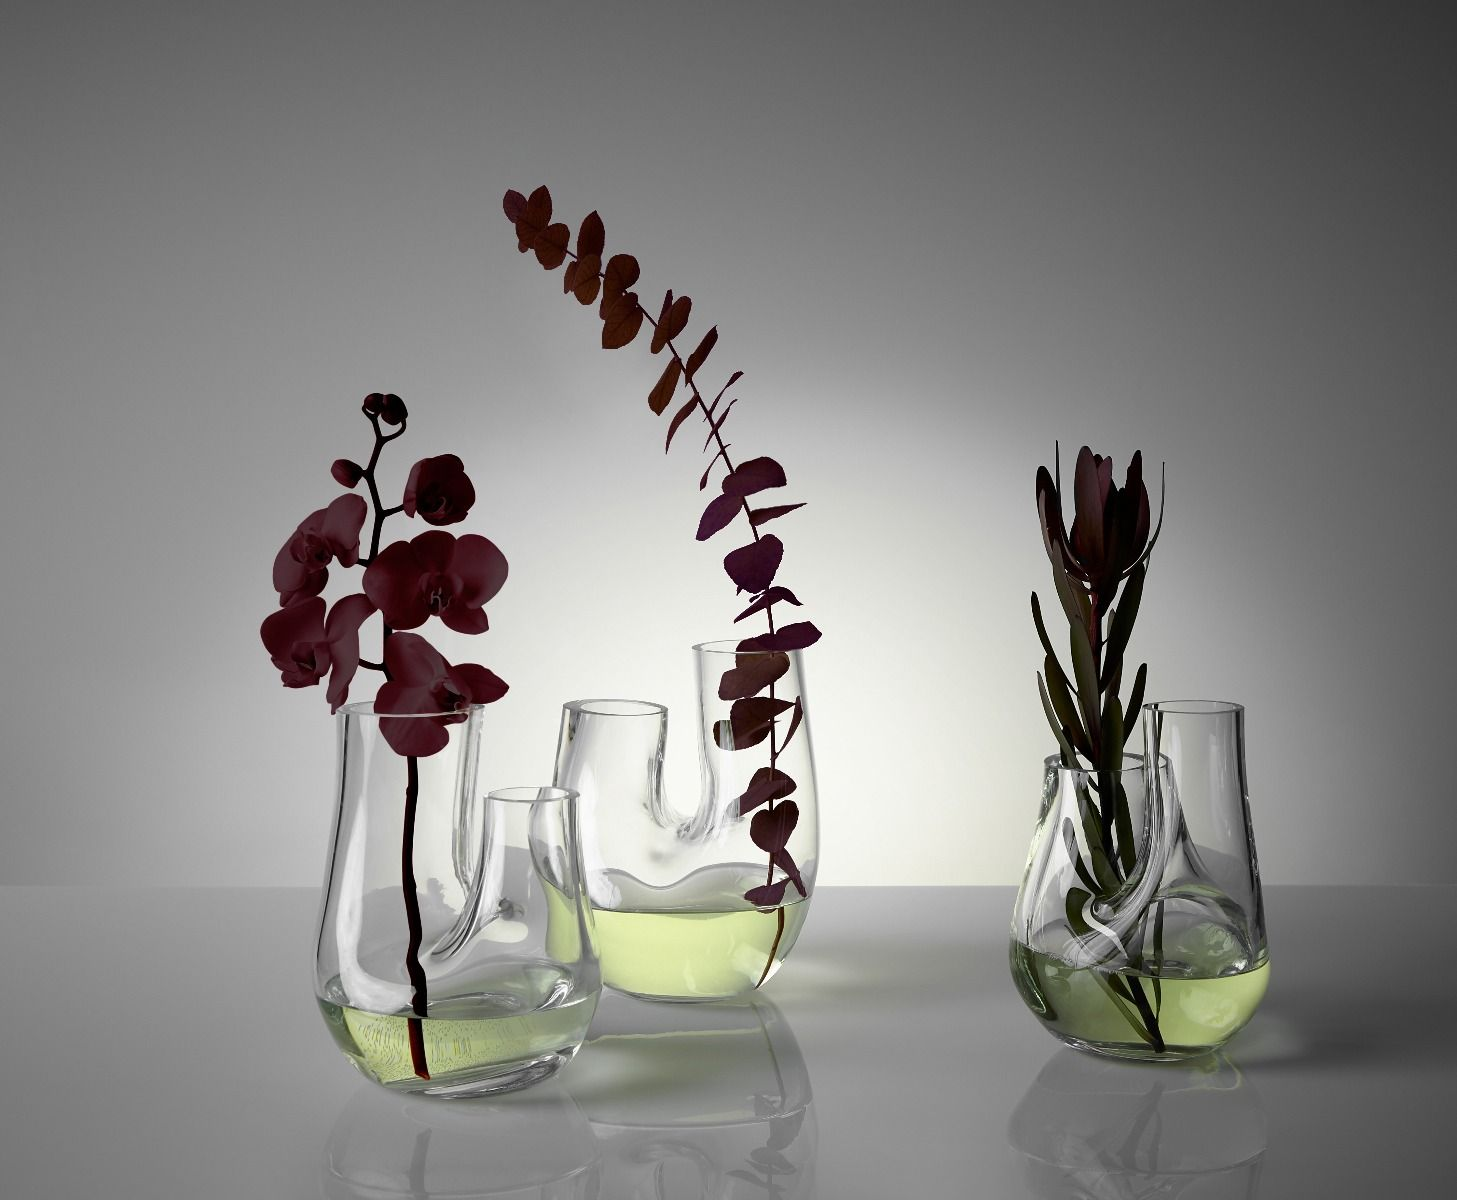 Plant Is All You Need In Your Home Interior Decor! 1